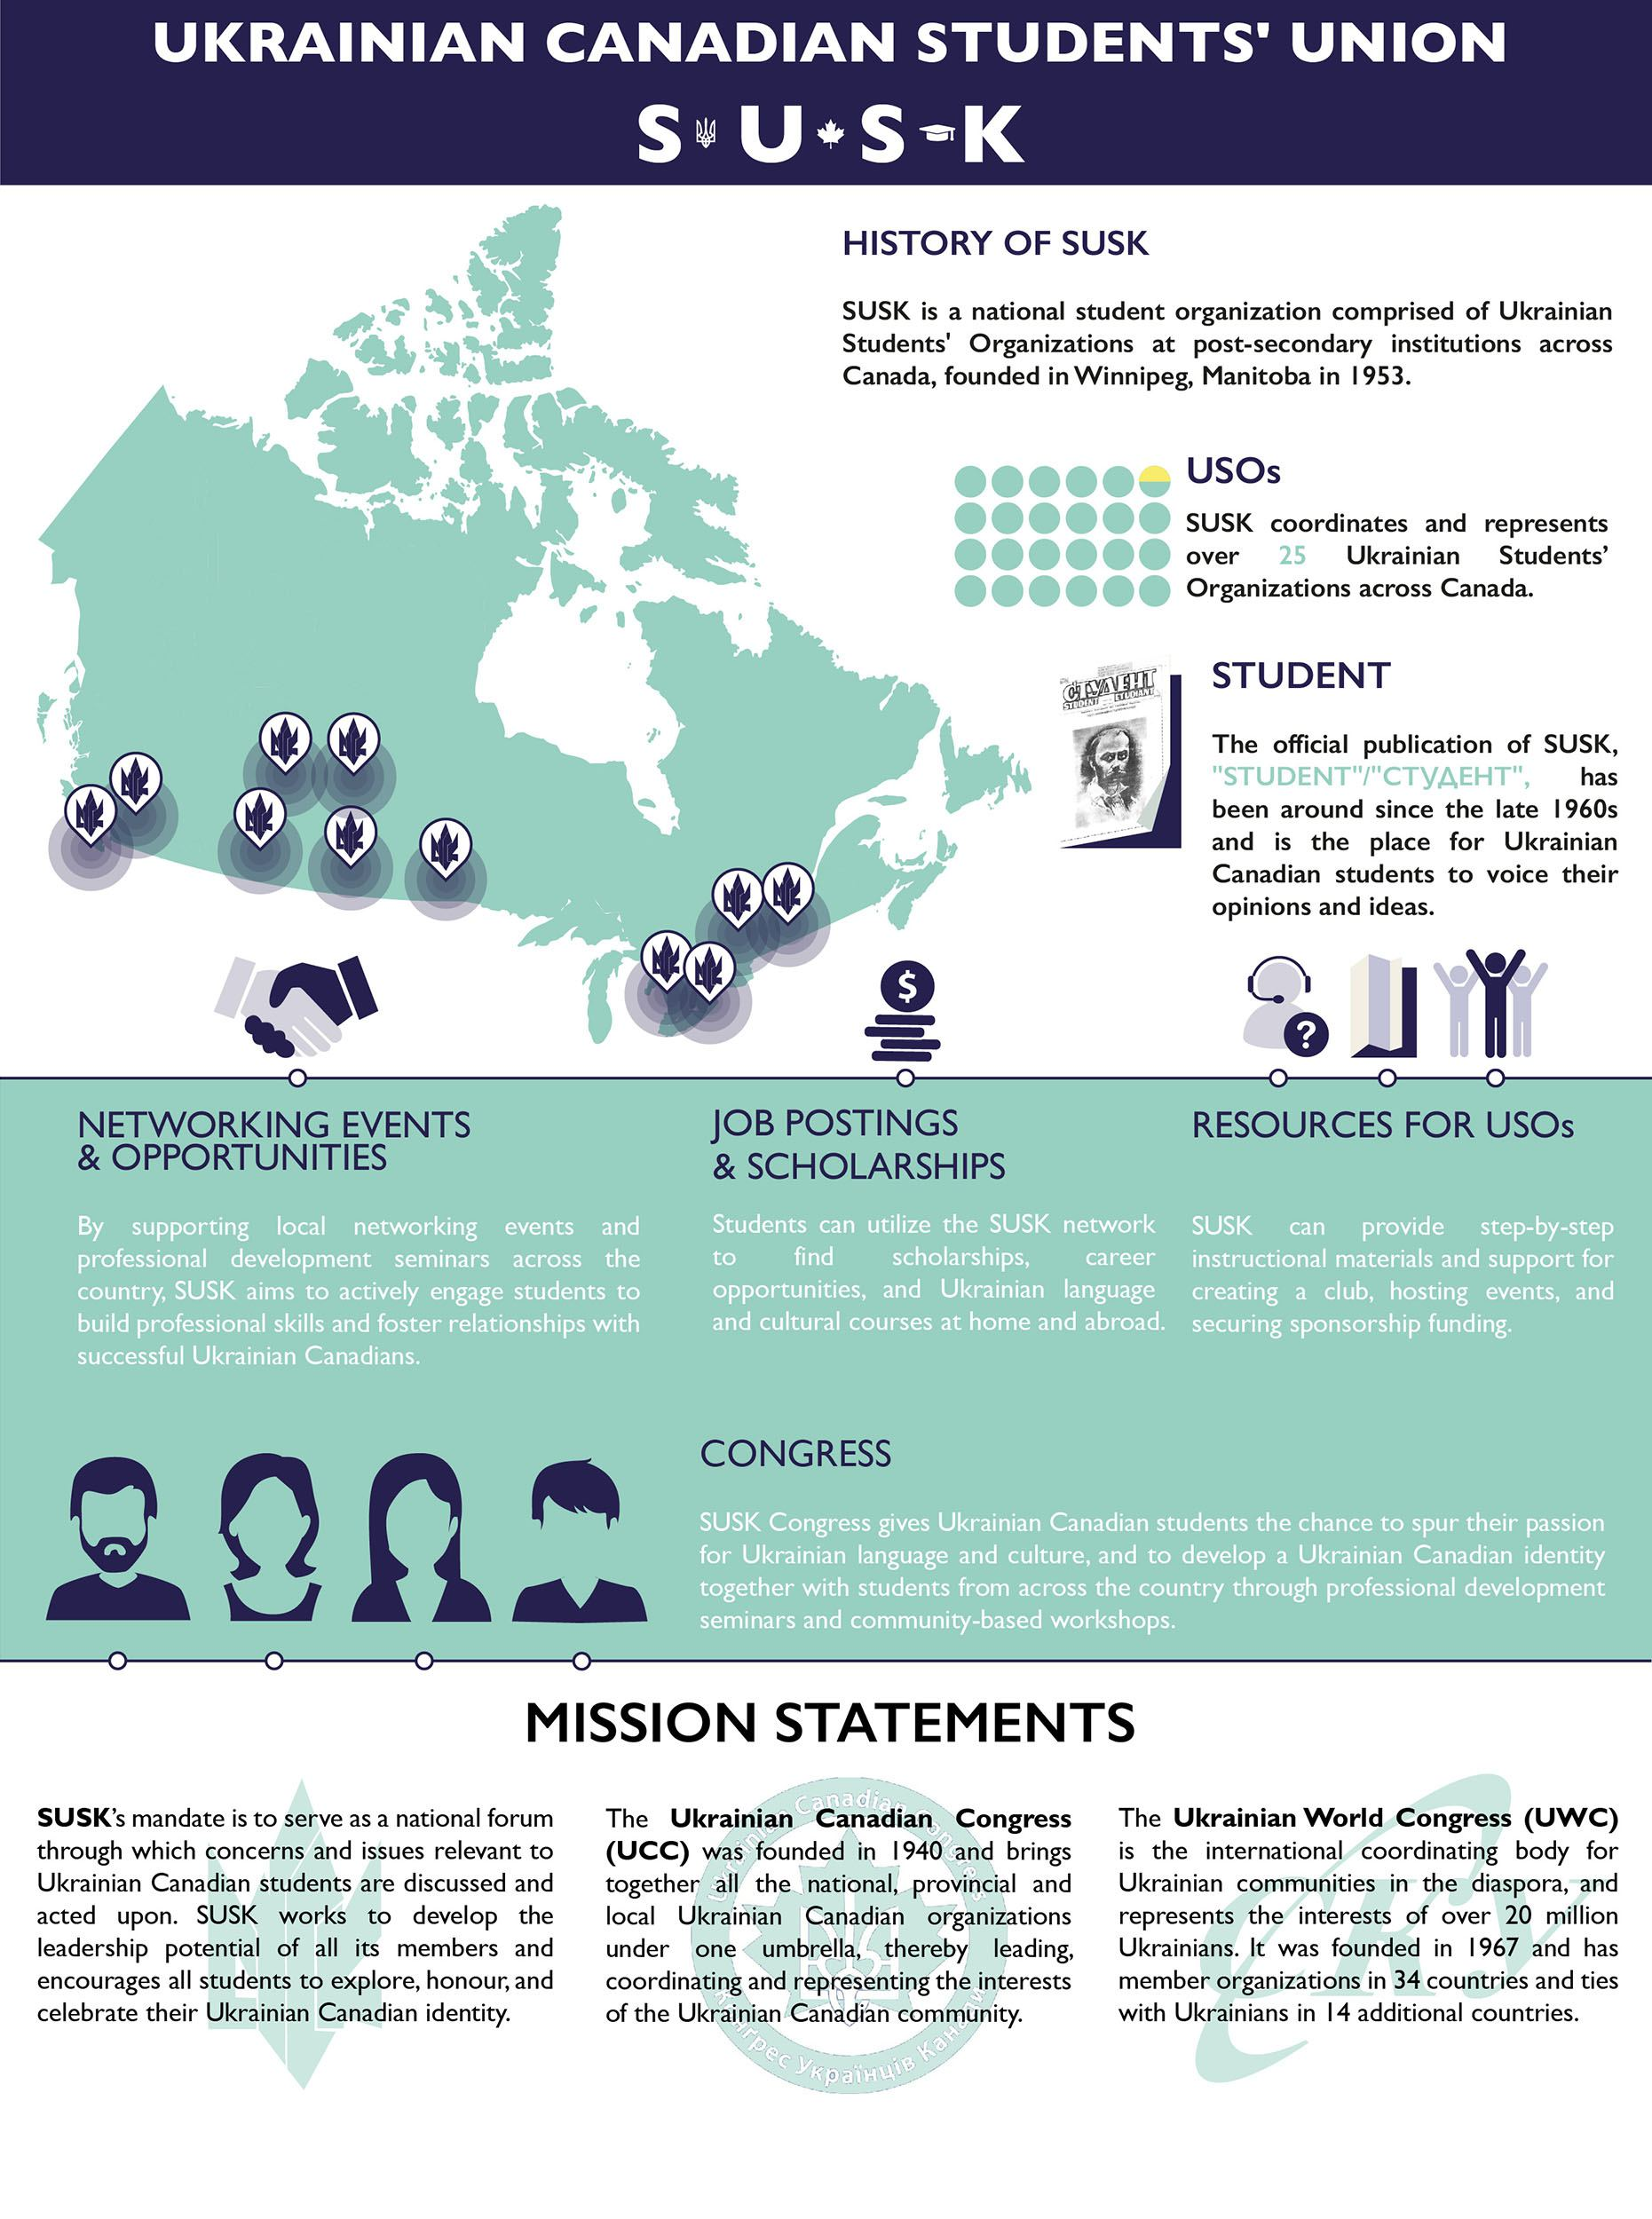 The Ukrainian Canadian Students' Union (SUSK) Infographic by Urban Block Media in Ottawa